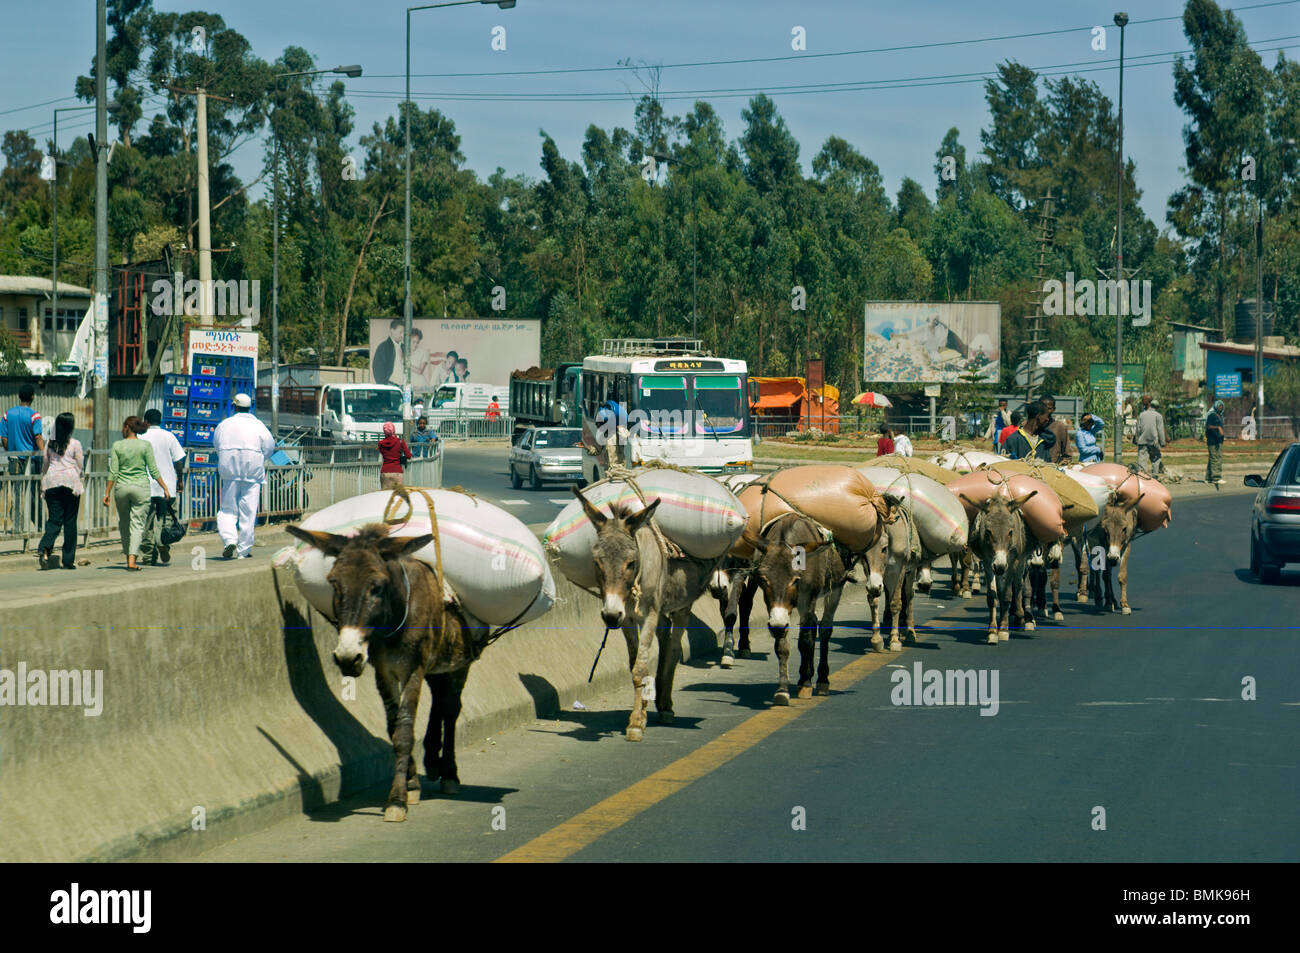 A row of donkeys carrying loads on their backs mix with cars